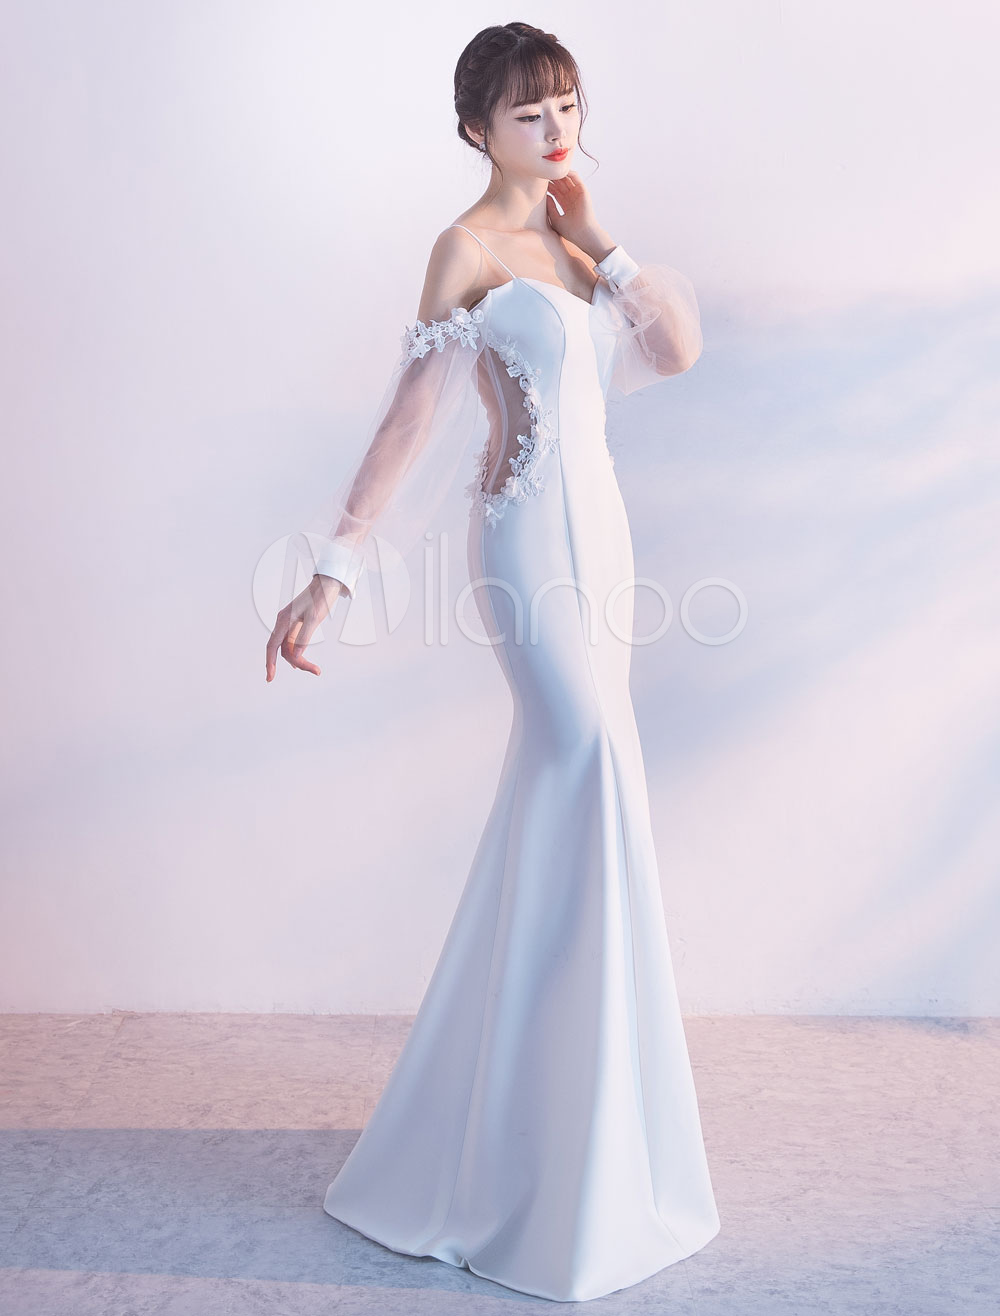 Buy Mermaid Evening Dresses Off The Shoulder Long Prom Dress Satin Long Sleeve Illusion Straps Floor Length Formal Dress for $167.19 in Milanoo store